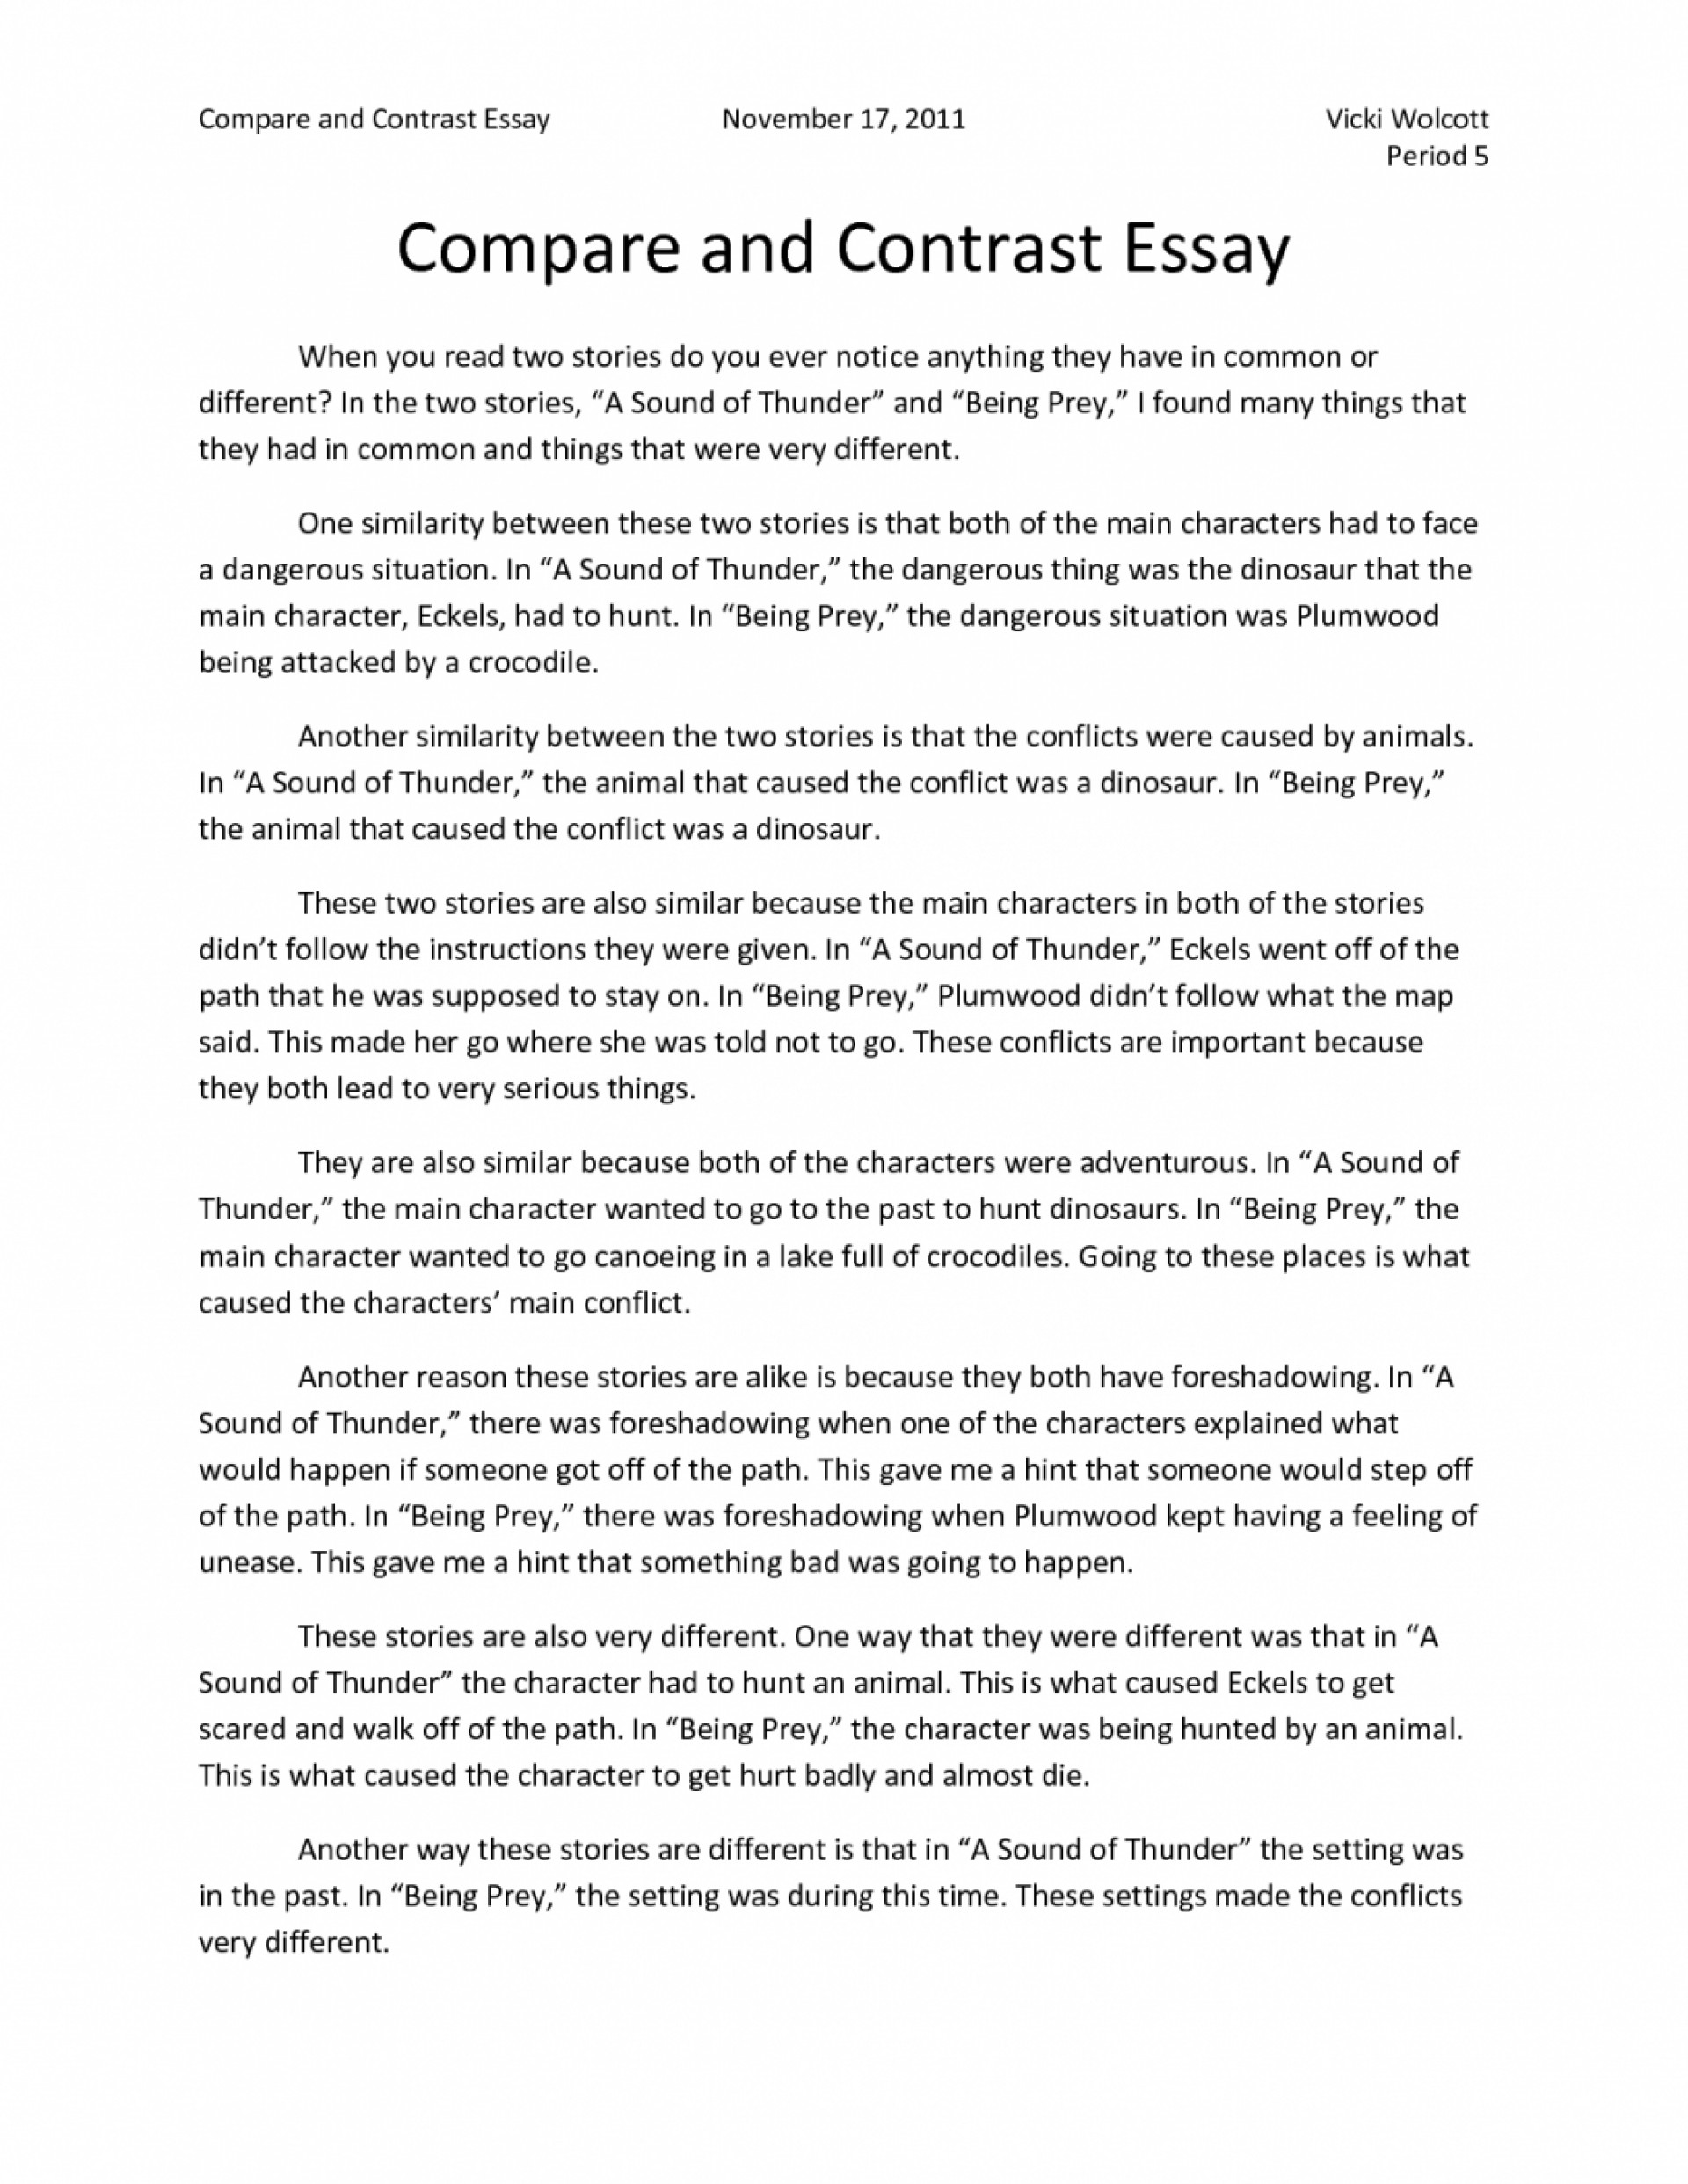 003 Conclusion For Compare And Contrastsay Writing Comparison Argumentative Research Paper Example Contrast Science Pdf Examples Outline Mla Apa History Scientific 1048x1356 Striking How To Write Essay Block Method 1920